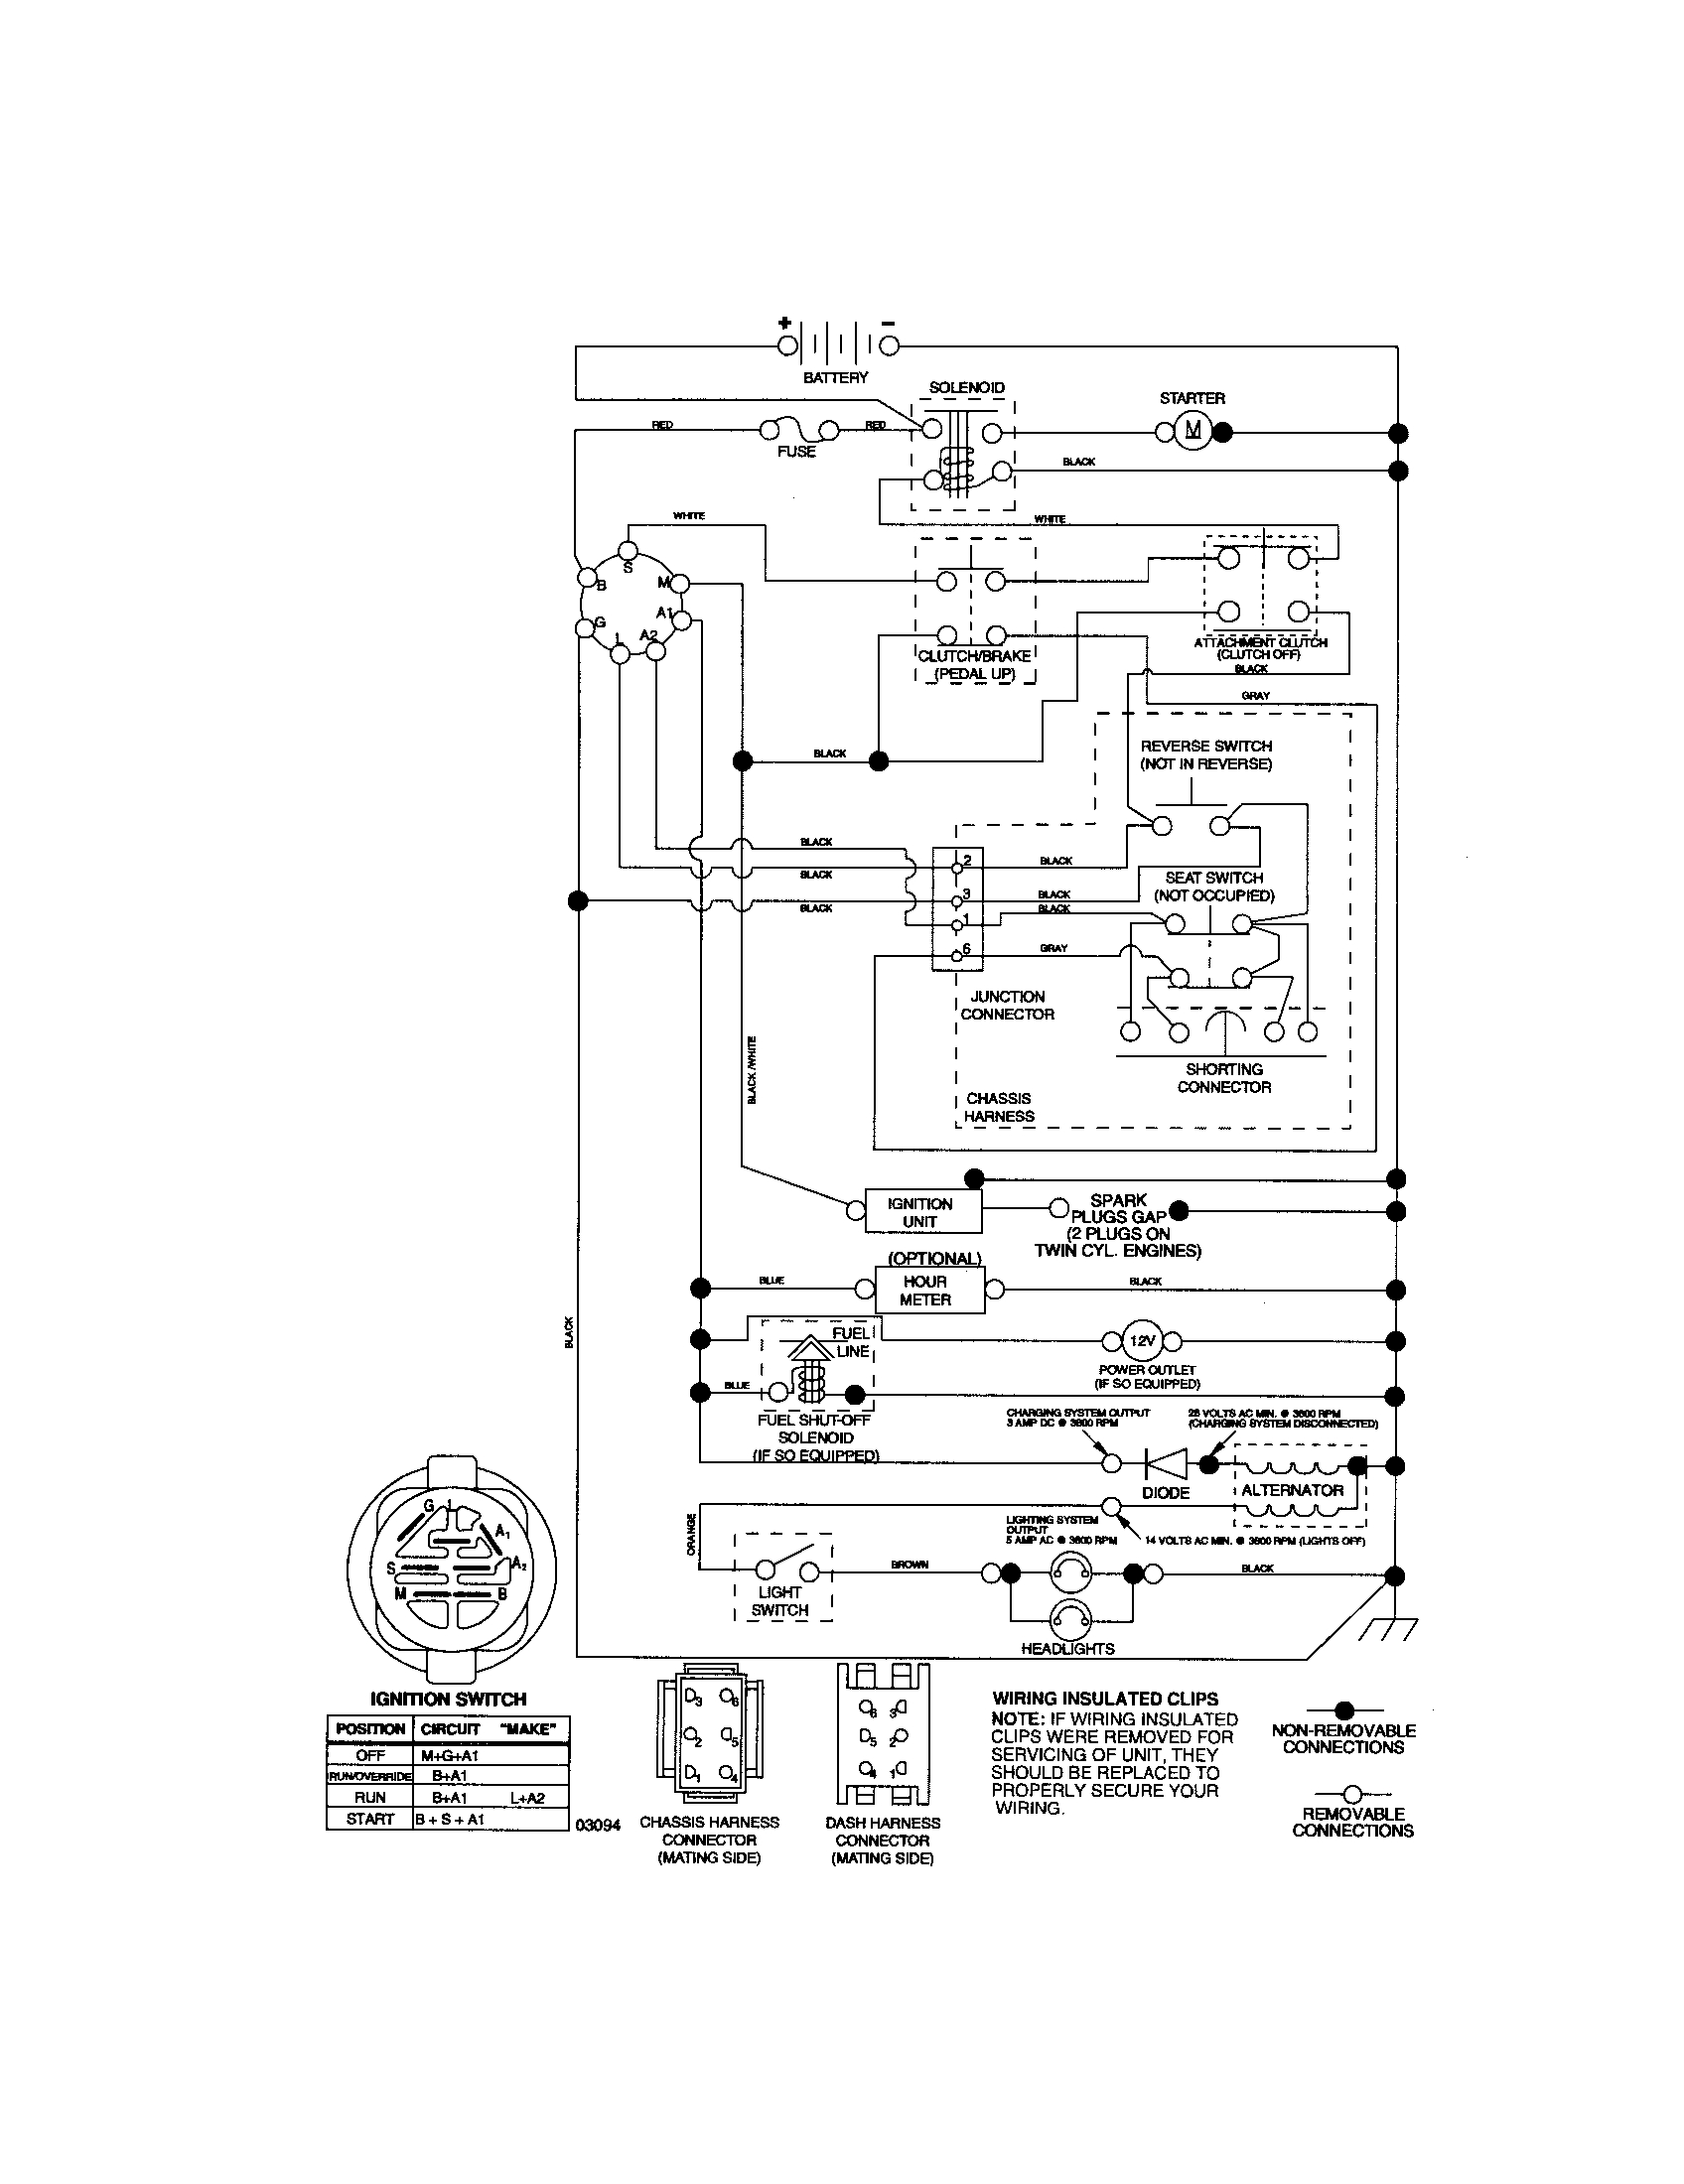 Wiring Diagram Craftsman Garden Tractor 917 273761 | Manual E-Books - Craftsman Lawn Mower Model 917 Wiring Diagram